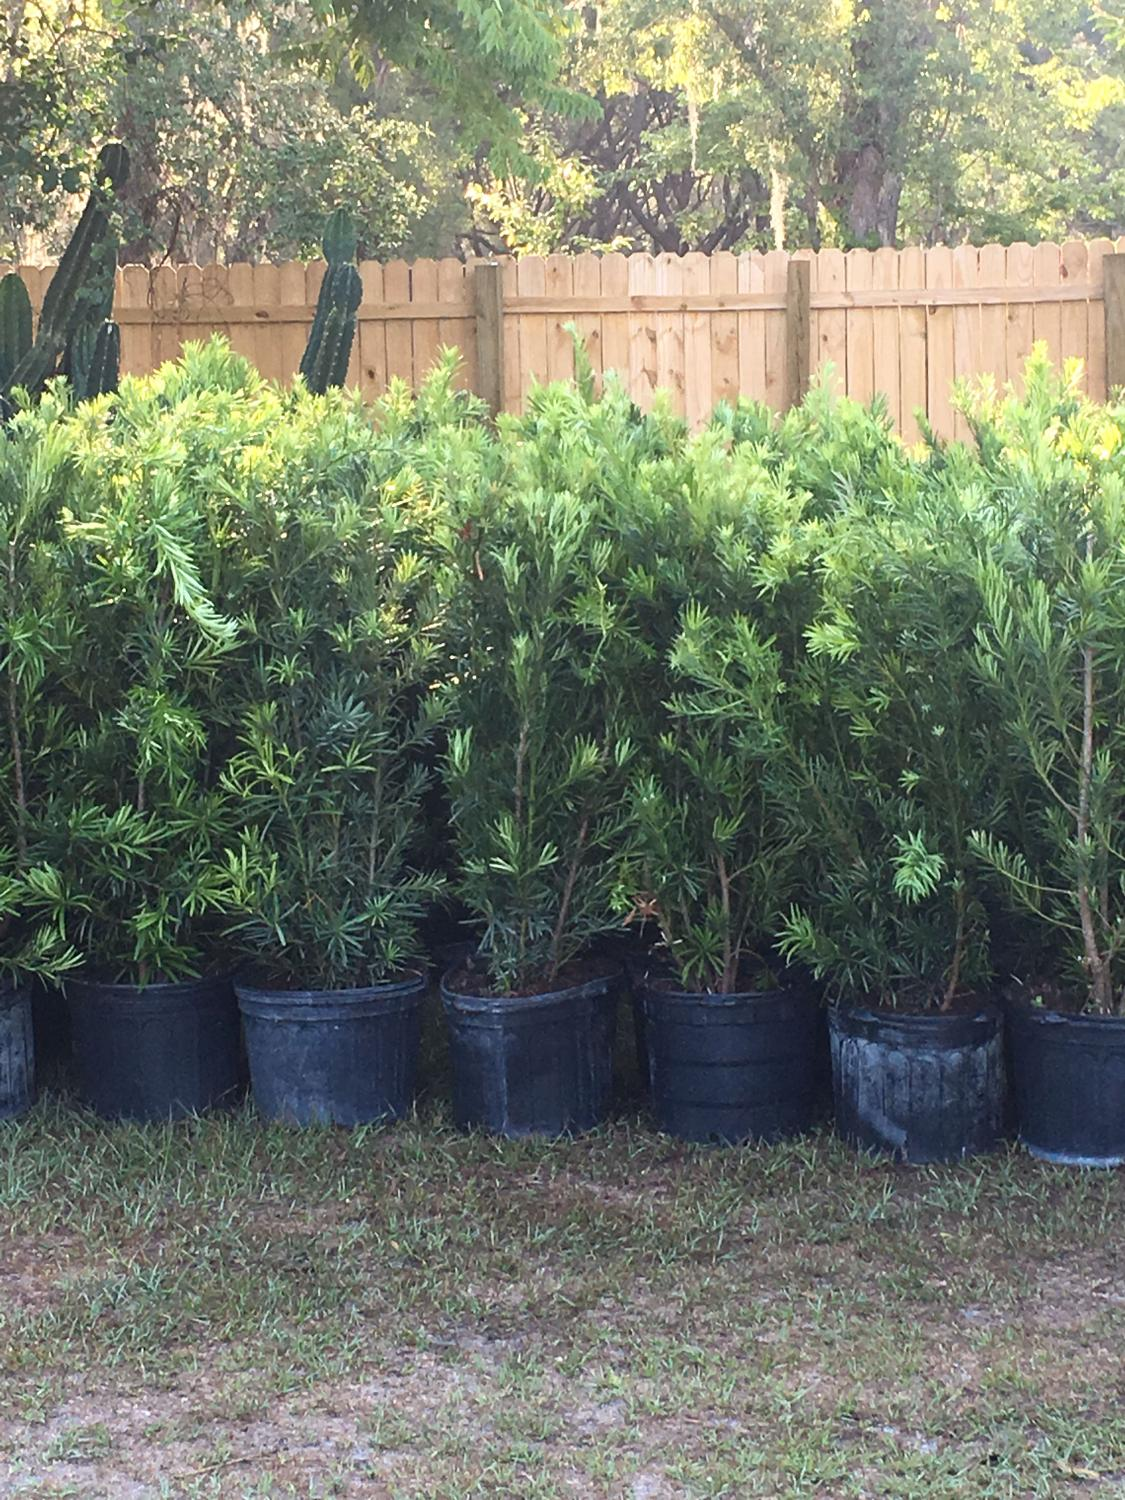 Best Podocarpus Hedge Plants For Sale In Deland Florida For 2020